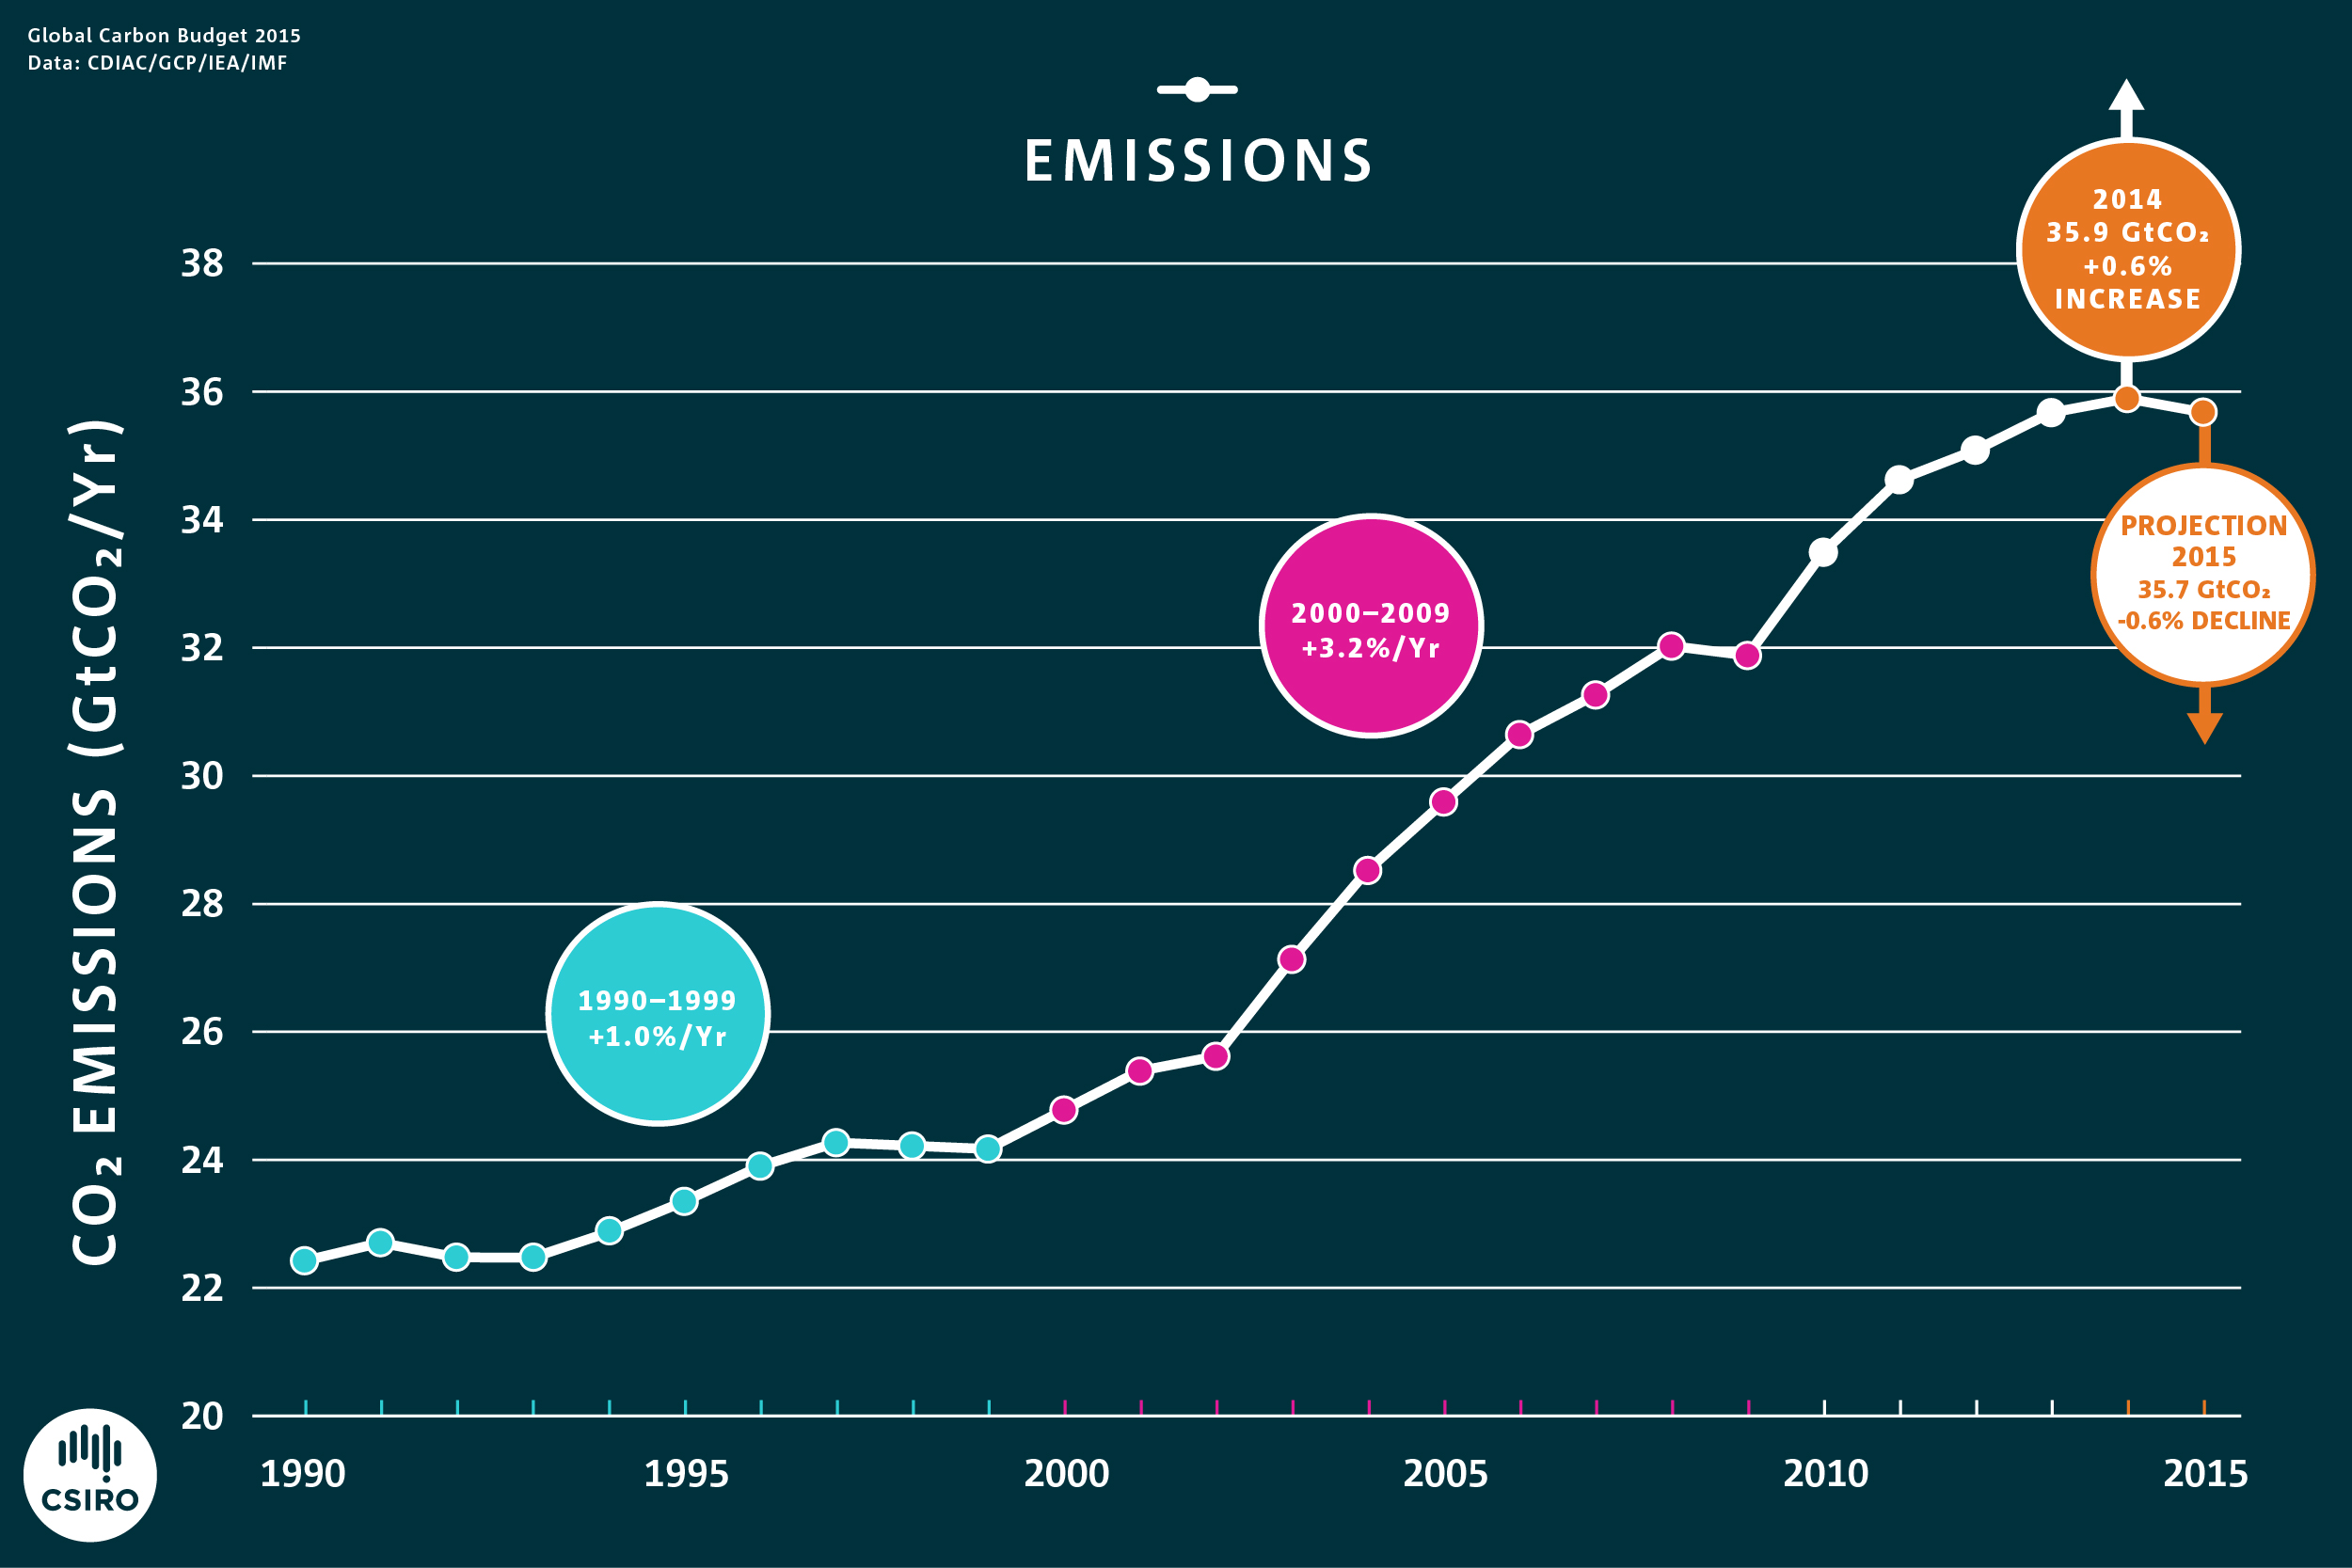 Graph showing the annual carbon dioxide emissions from fossil fuels and industrial processes since 1990.